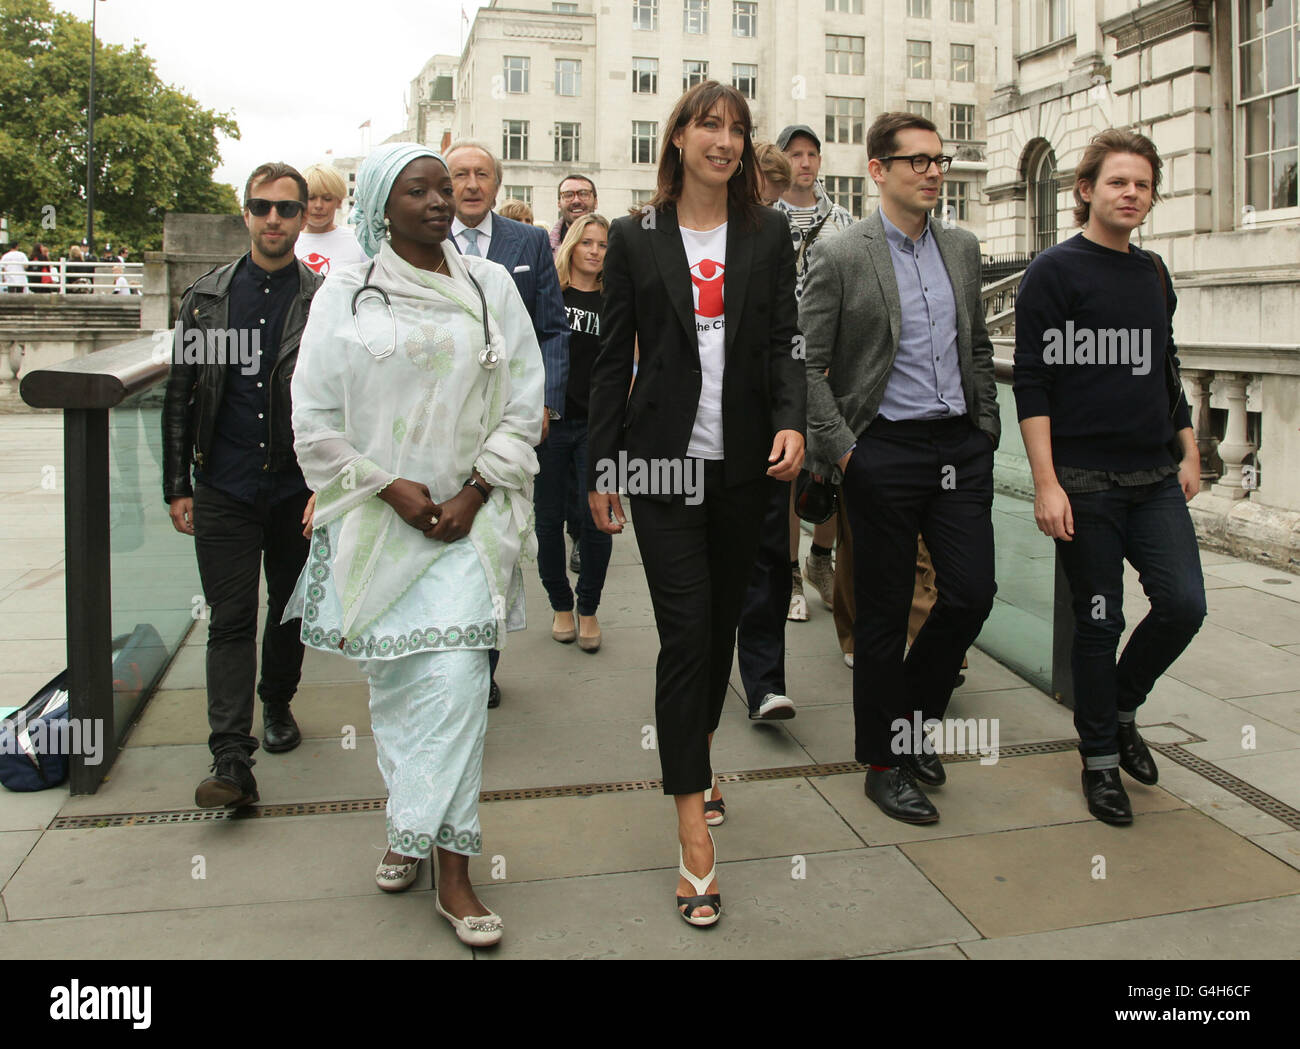 Save The Children's 'Fashion Mile Born to Walk Tall' campaign launch - Stock Image